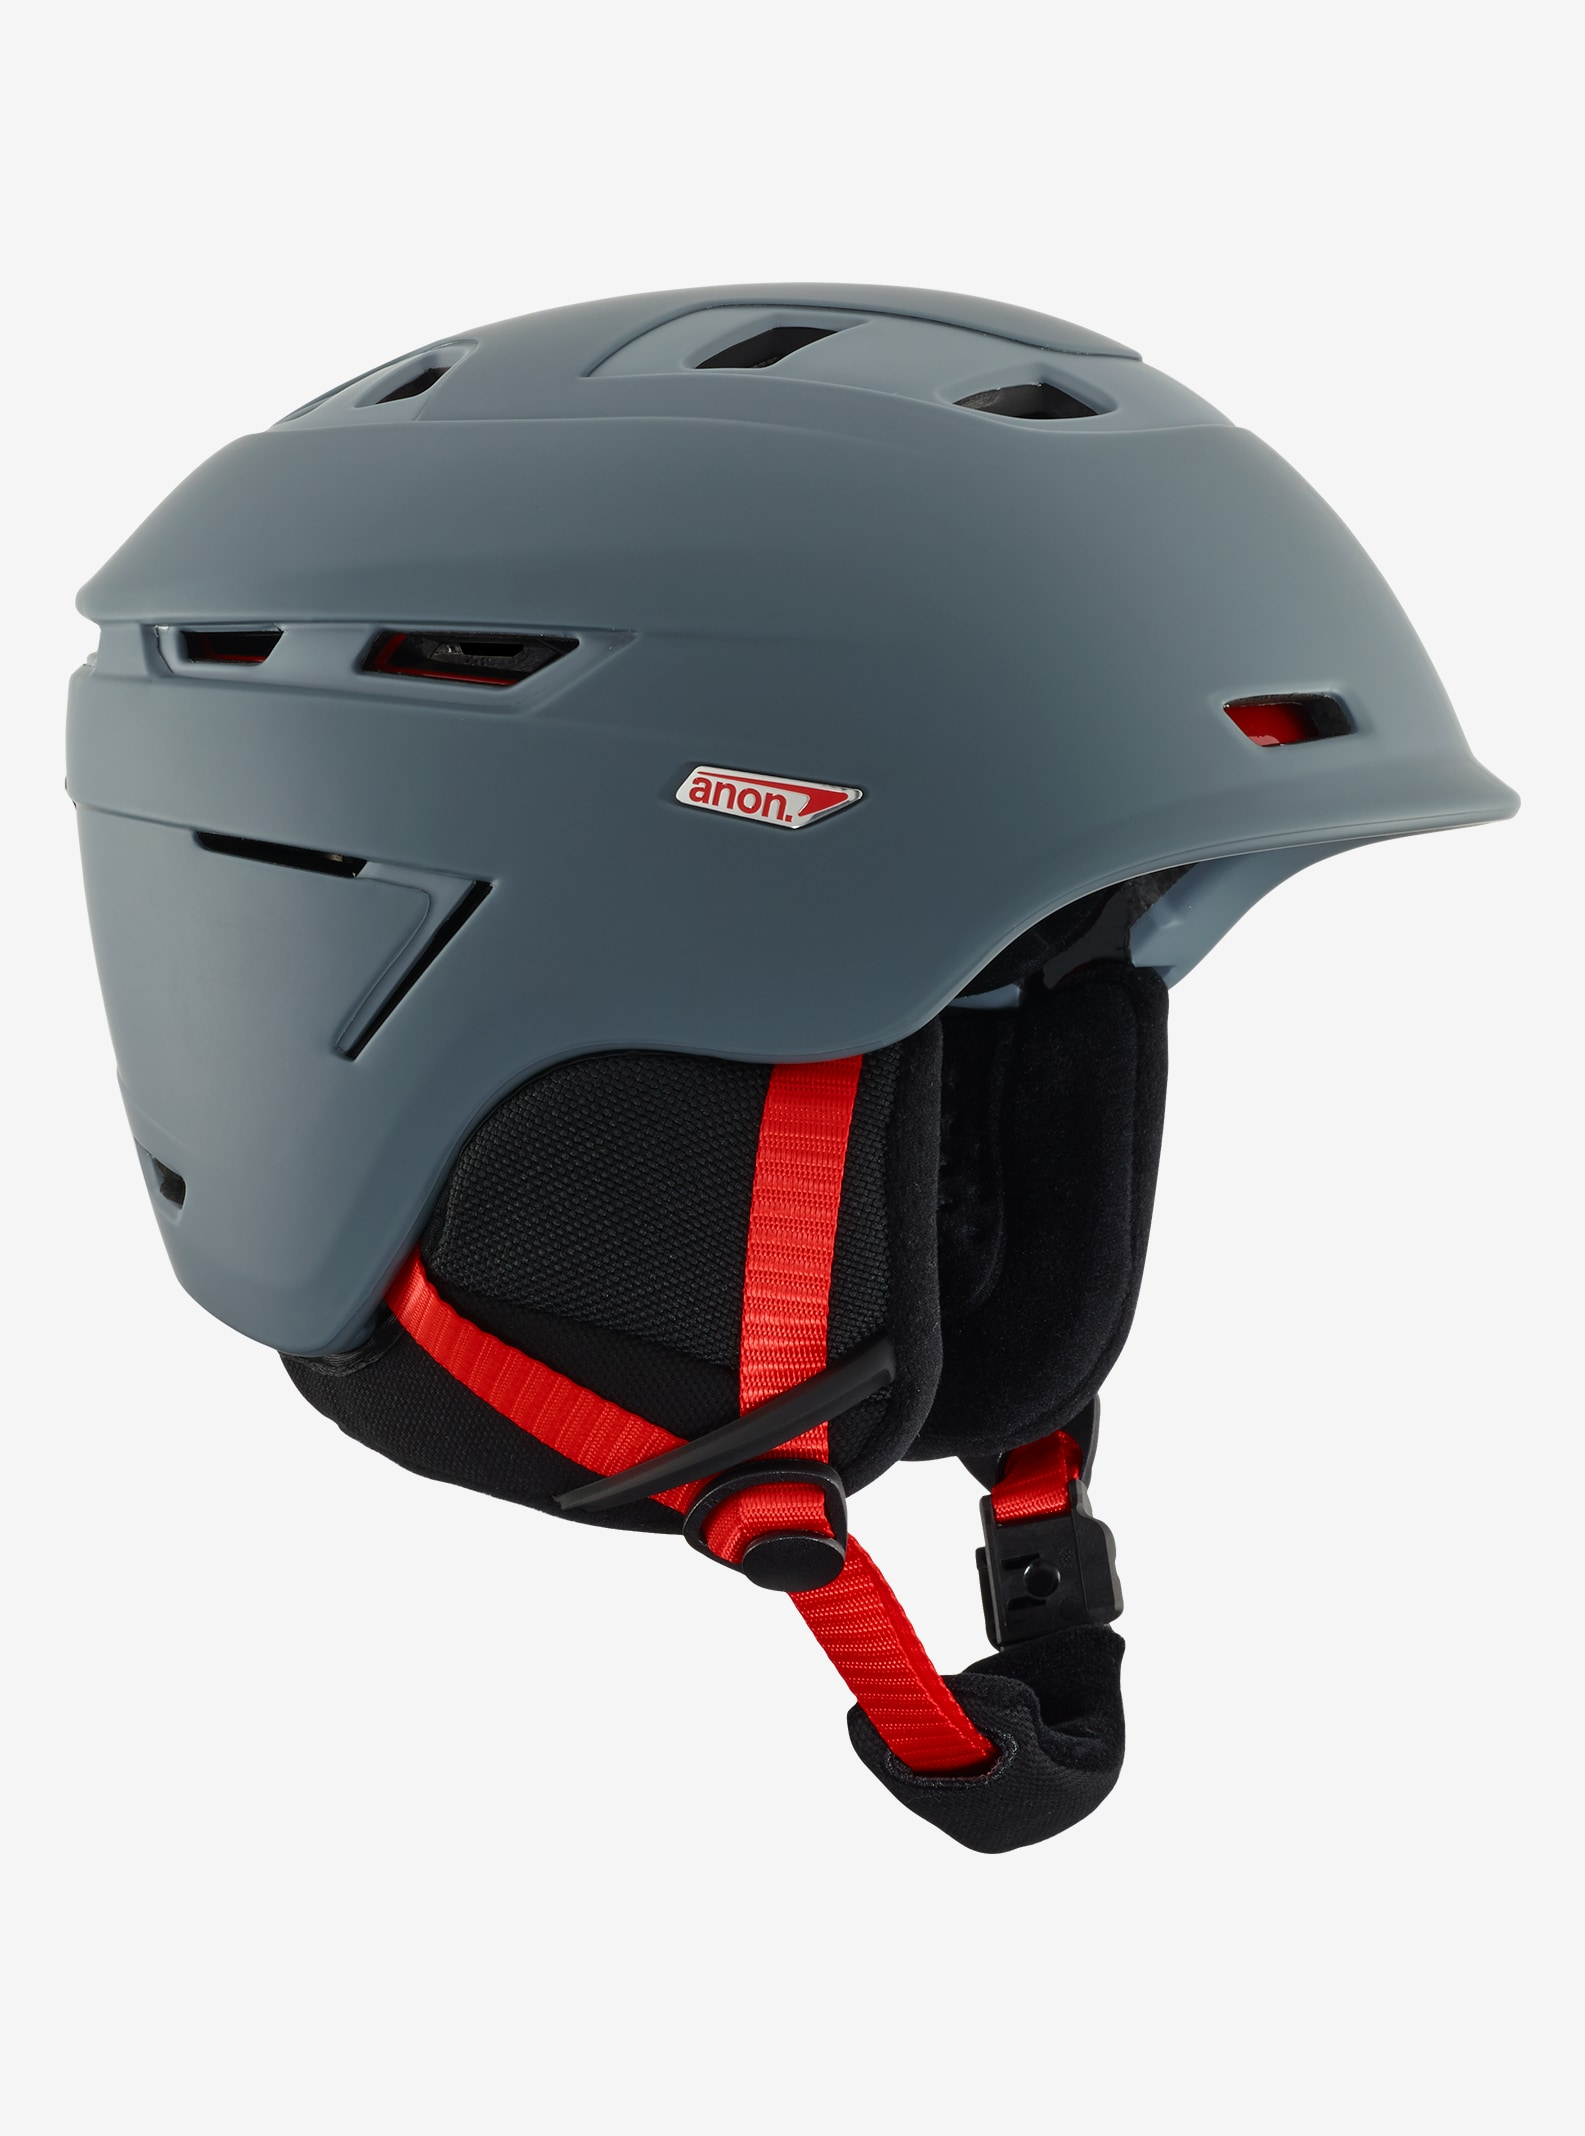 Men's Anon Echo Helmet shown in Gray